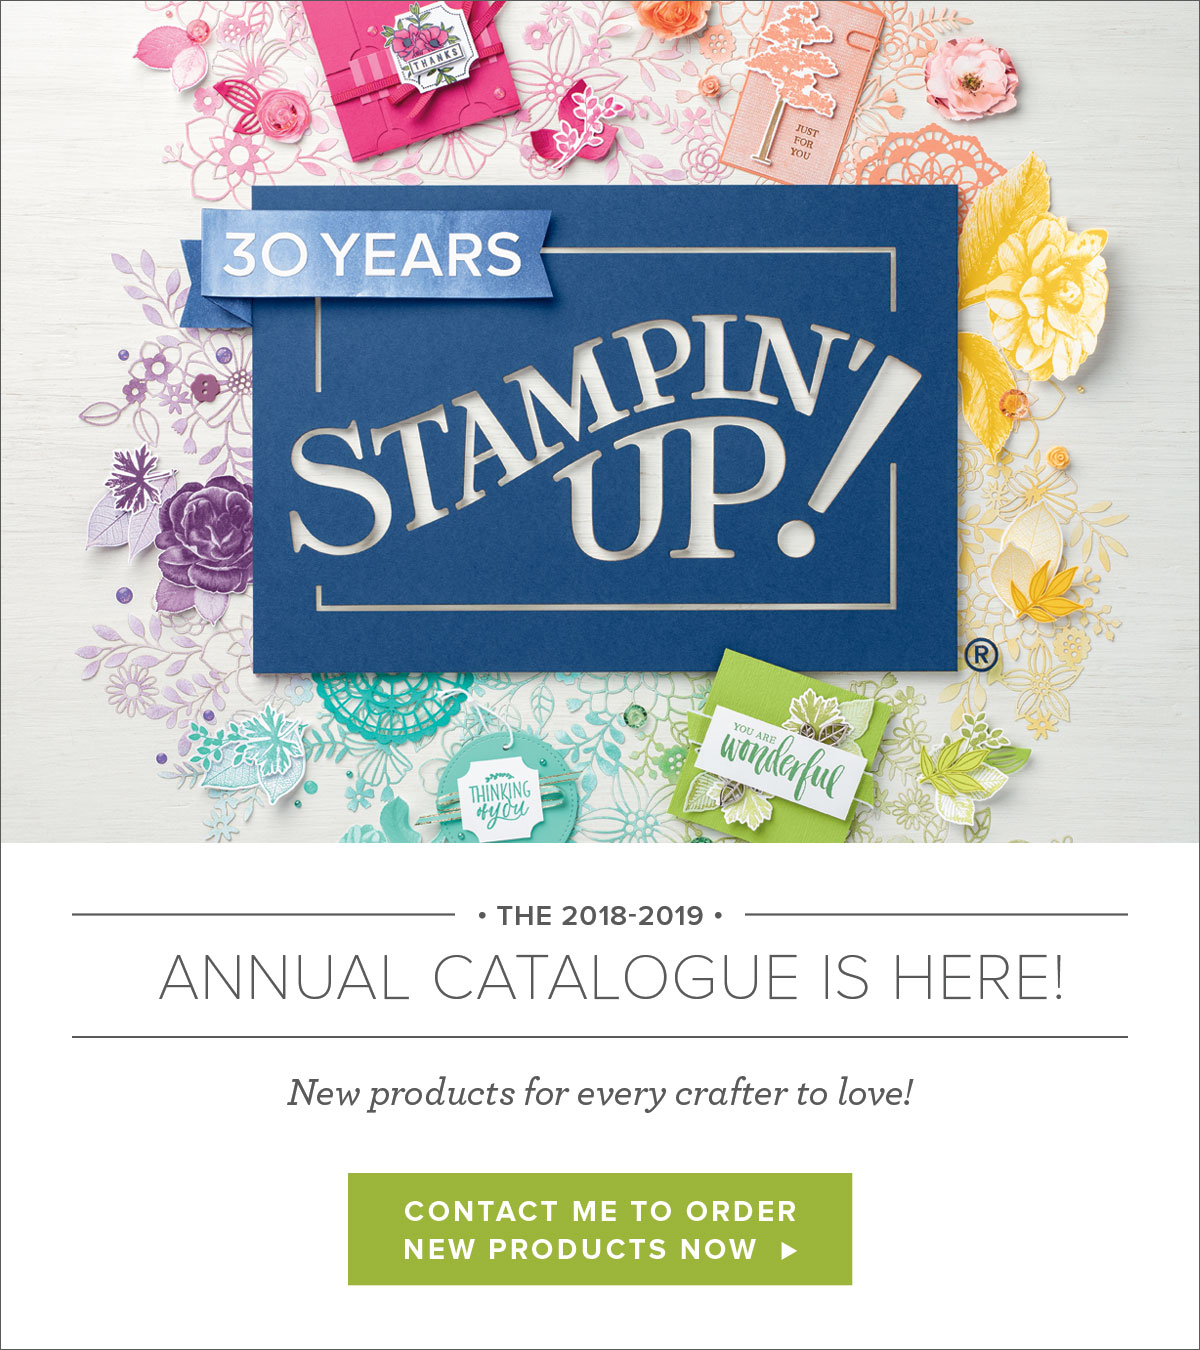 Annual Catalogue 2018 - 2019